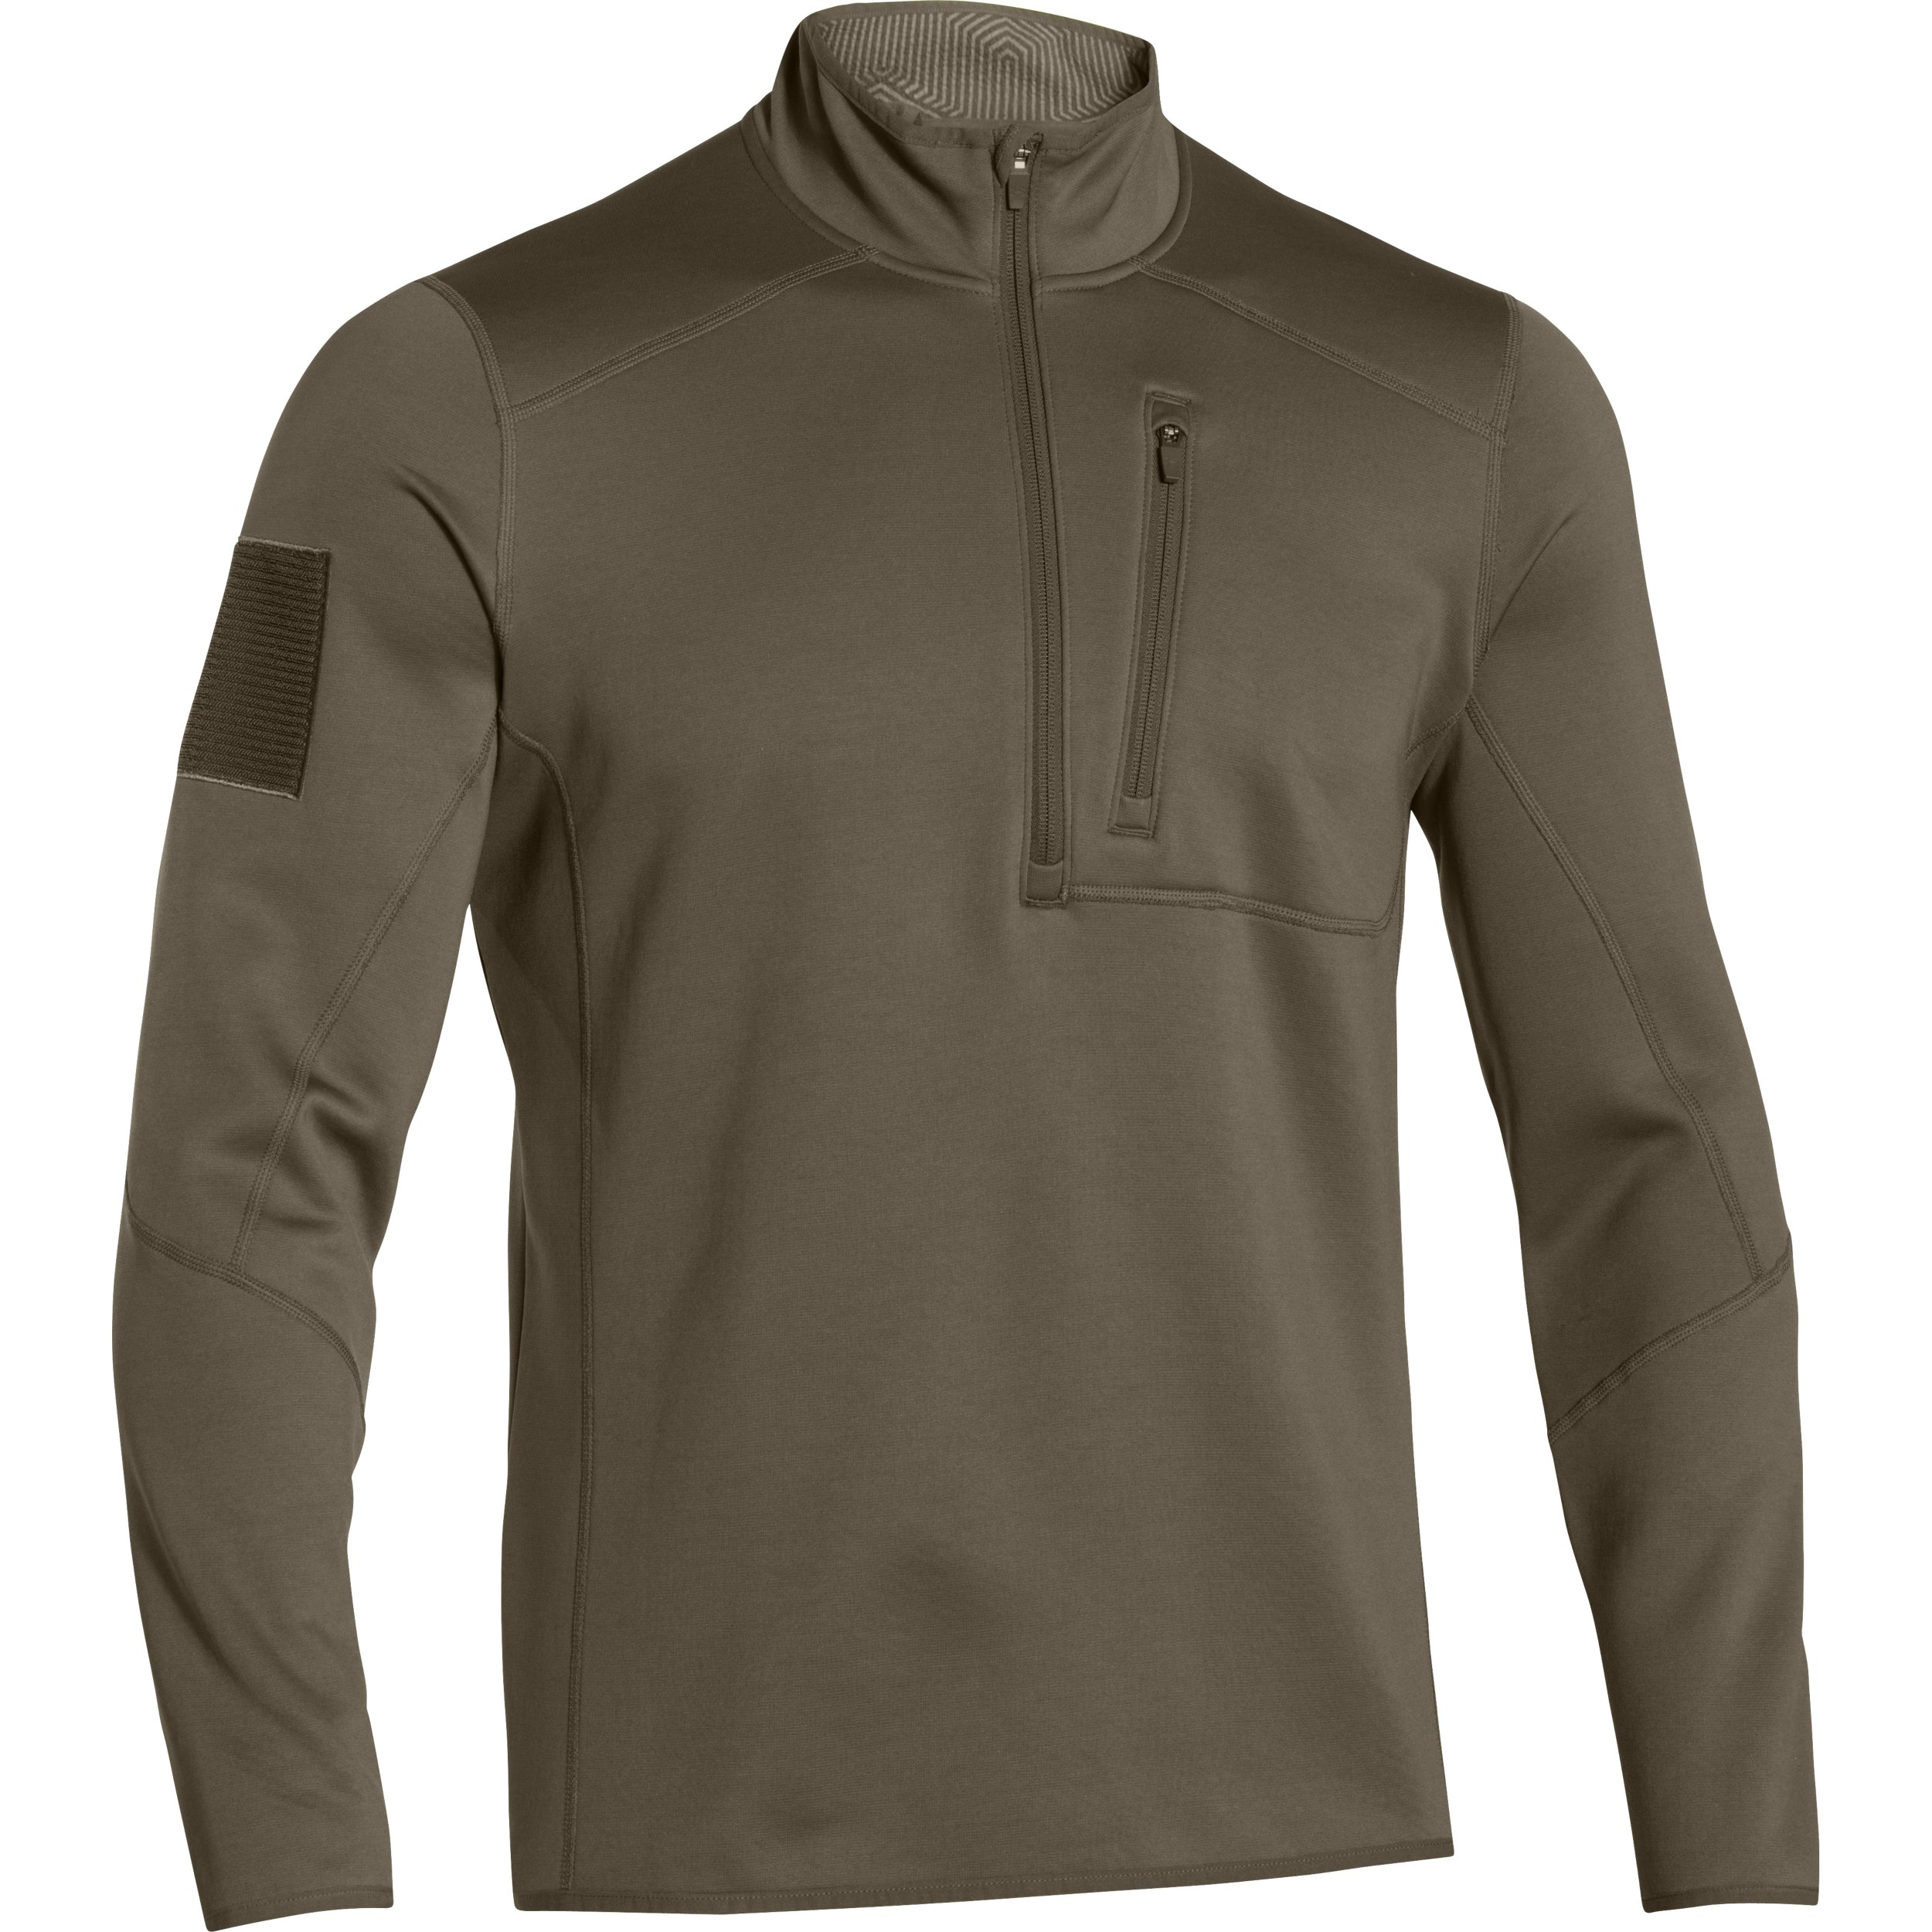 Under Armour SS18 male shirt